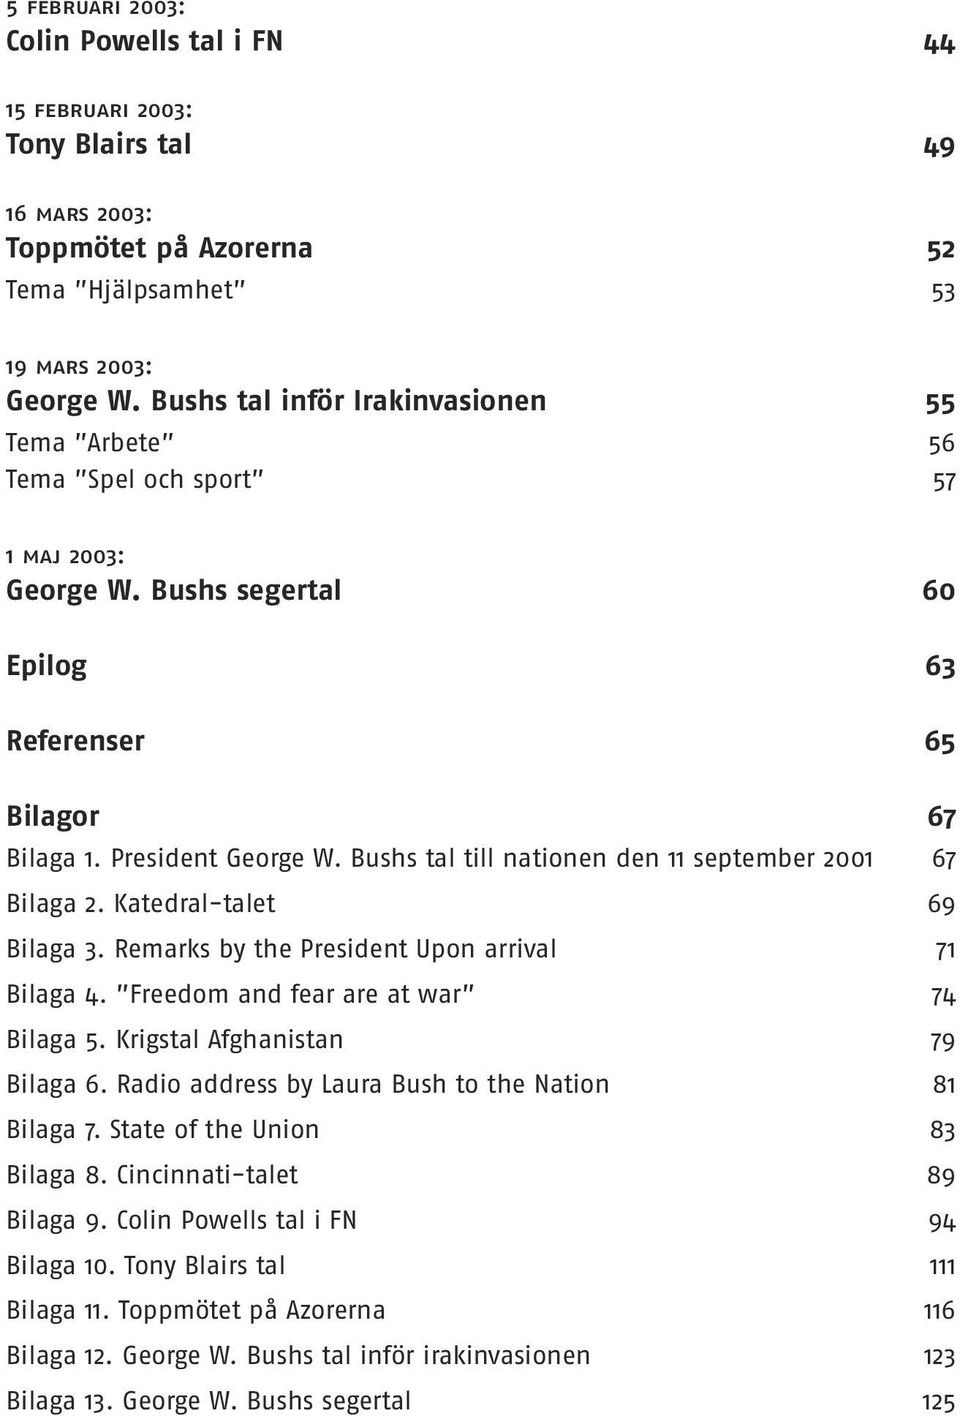 Bushs tal till nationen den 11 september 2001 67 Bilaga 2. Katedral-talet 69 Bilaga 3. Remarks by the President Upon arrival 71 Bilaga 4. Freedom and fear are at war 74 Bilaga 5.